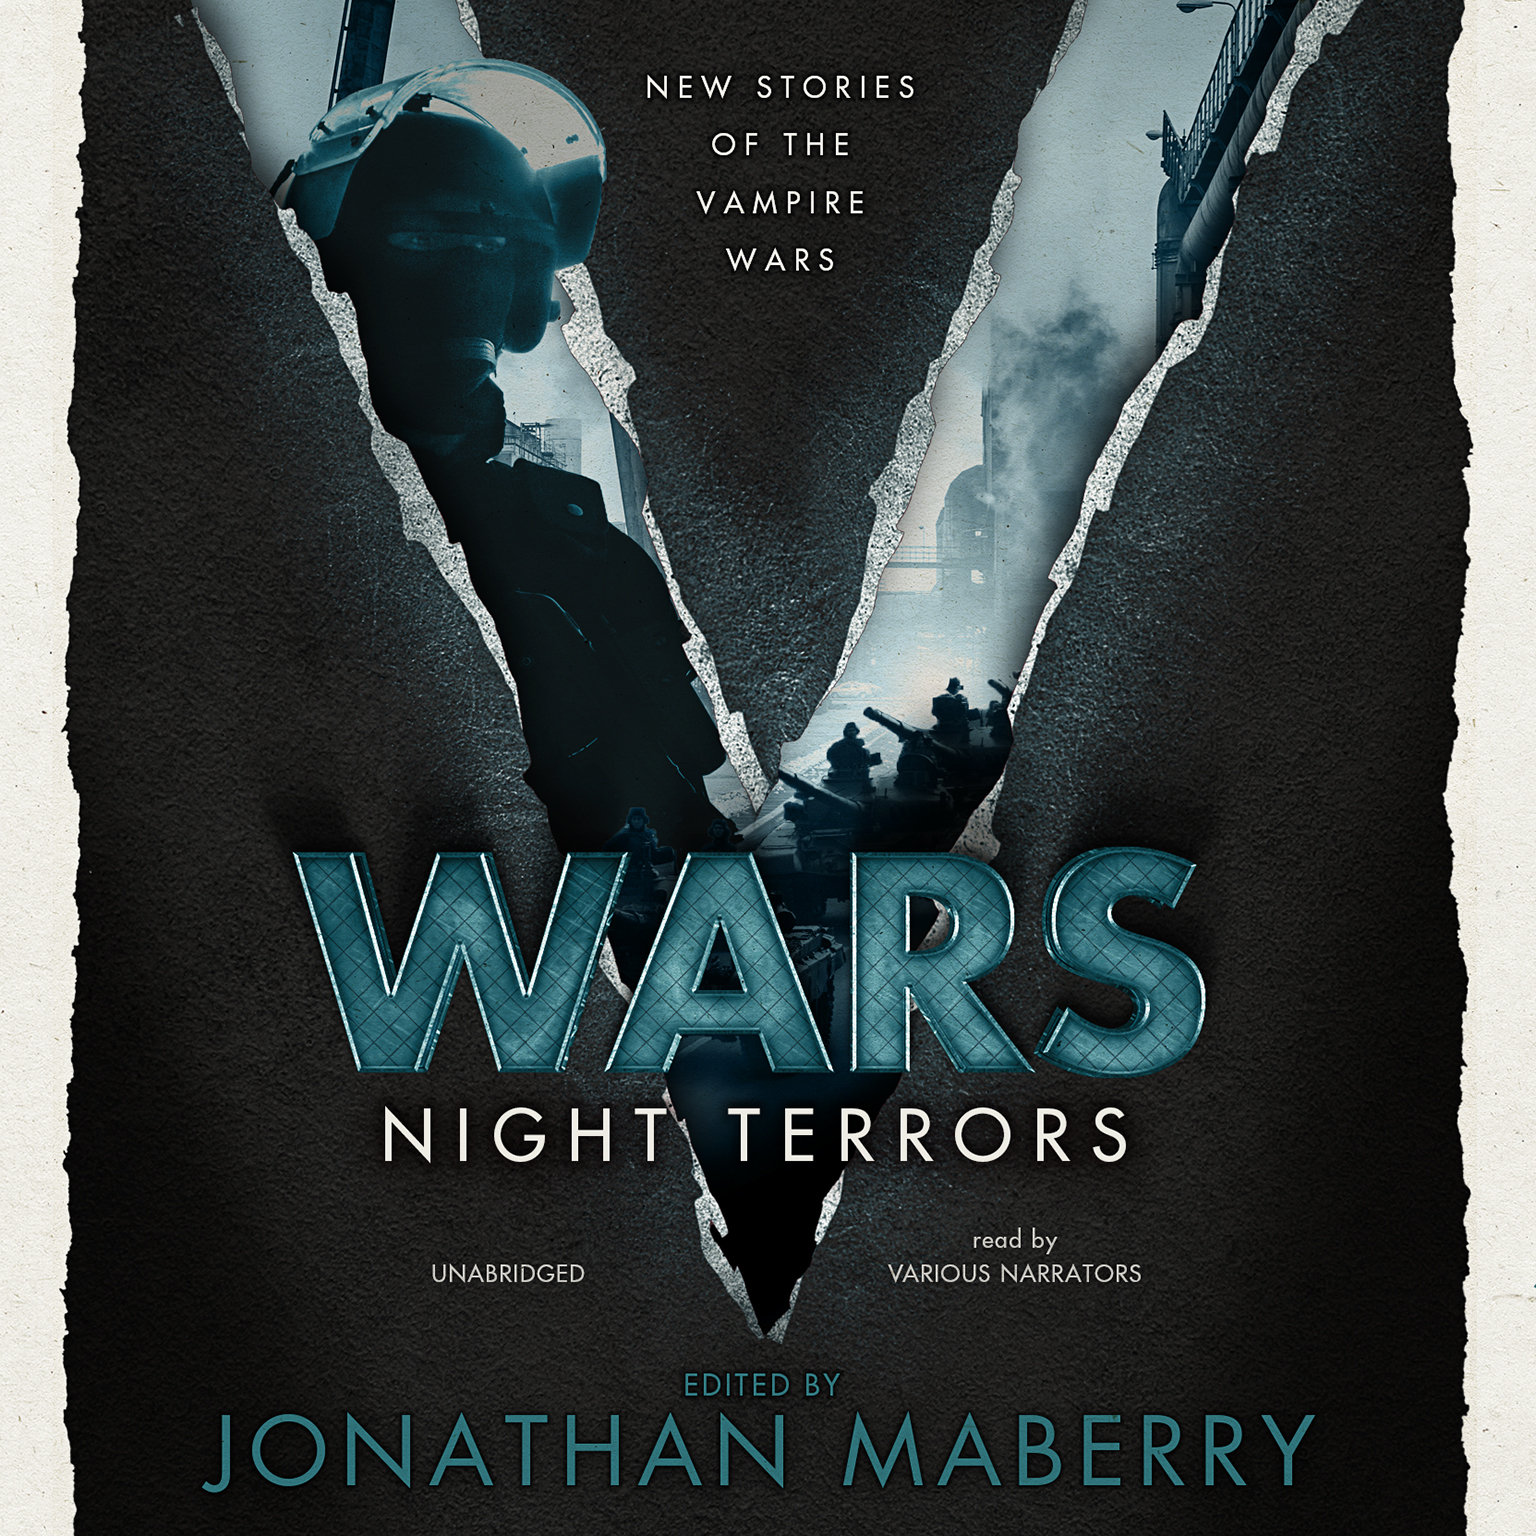 Printable V Wars: Night Terrors: New Stories of the Vampire Wars Audiobook Cover Art